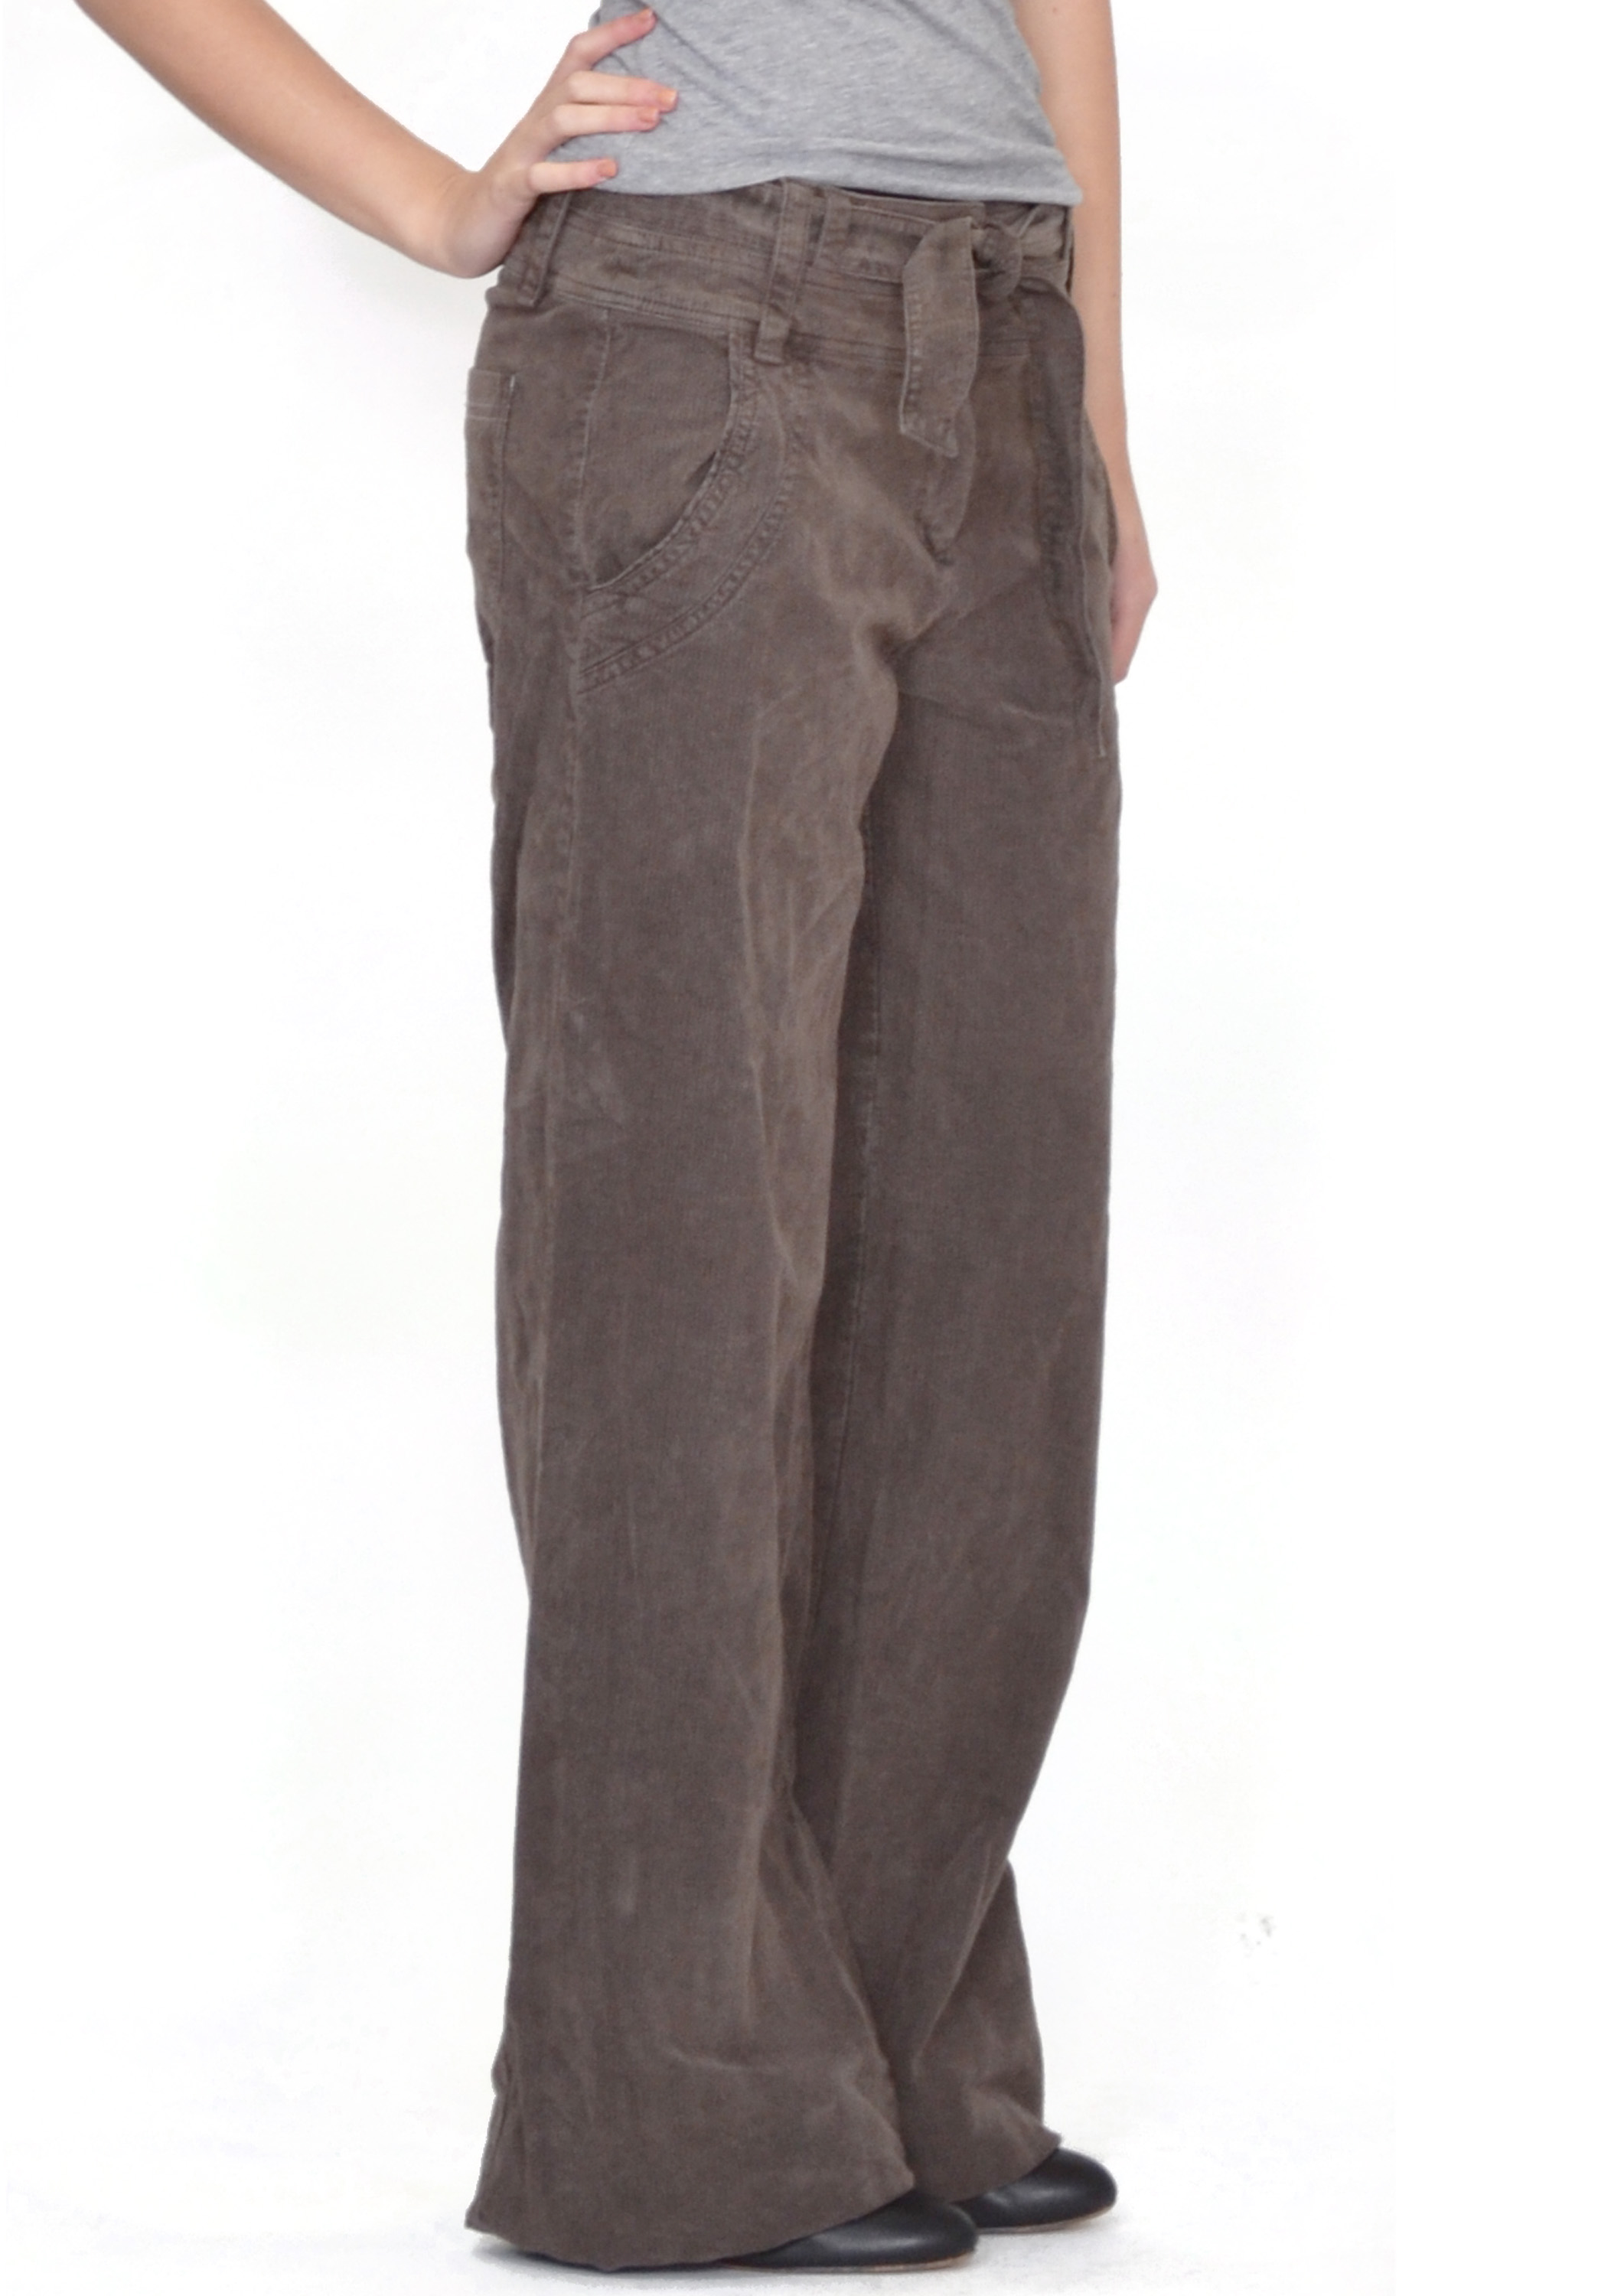 Preowned Pilcro and The Letterpress Corduroy Pants in Women's size They've been worn once so they're still in great shape. The color is a mud-grey. Thanks for looking! Please feel free to ask any additional questions about these cords.